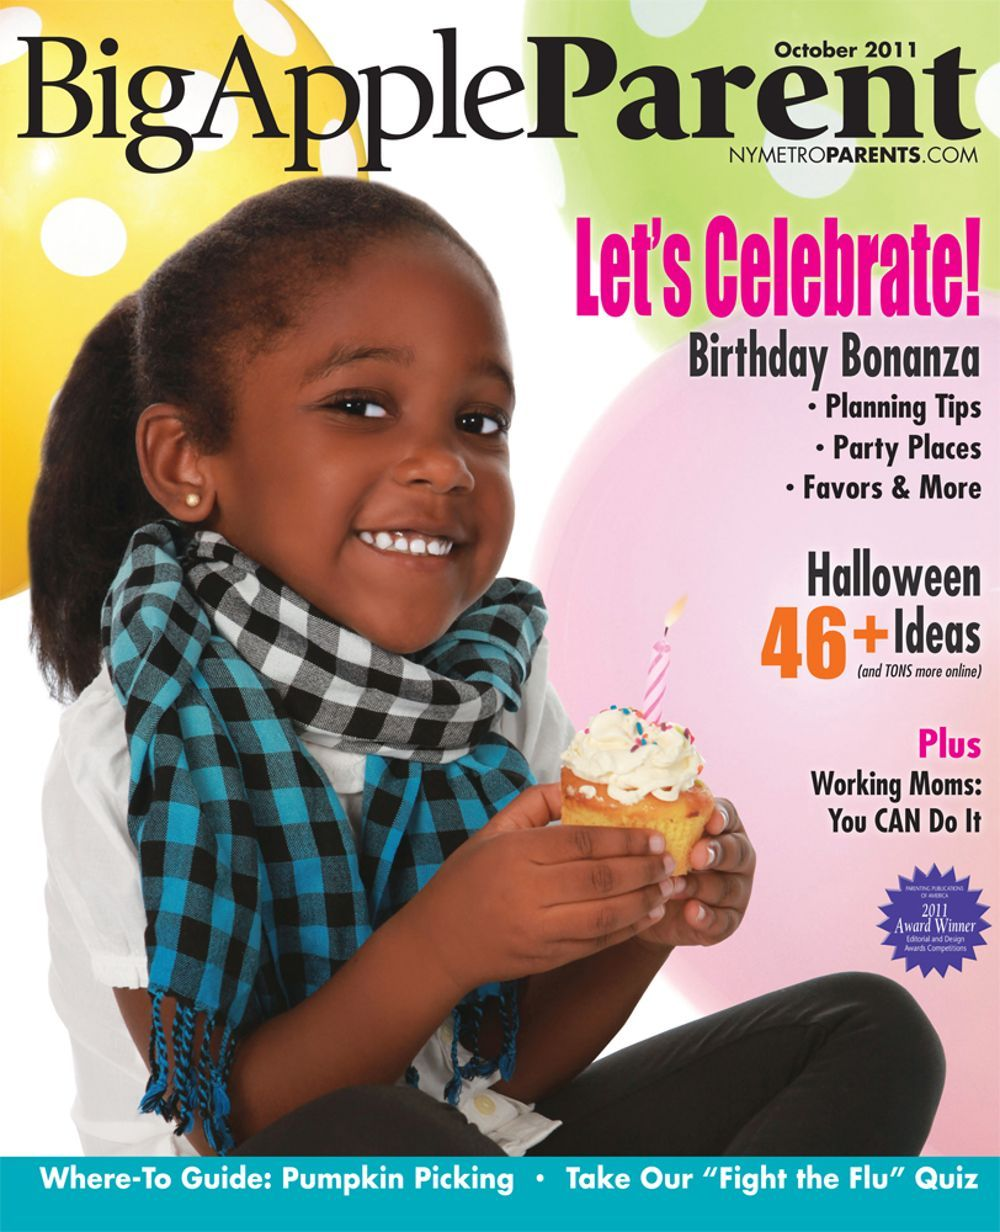 Big Apple Parent October 2011 cover